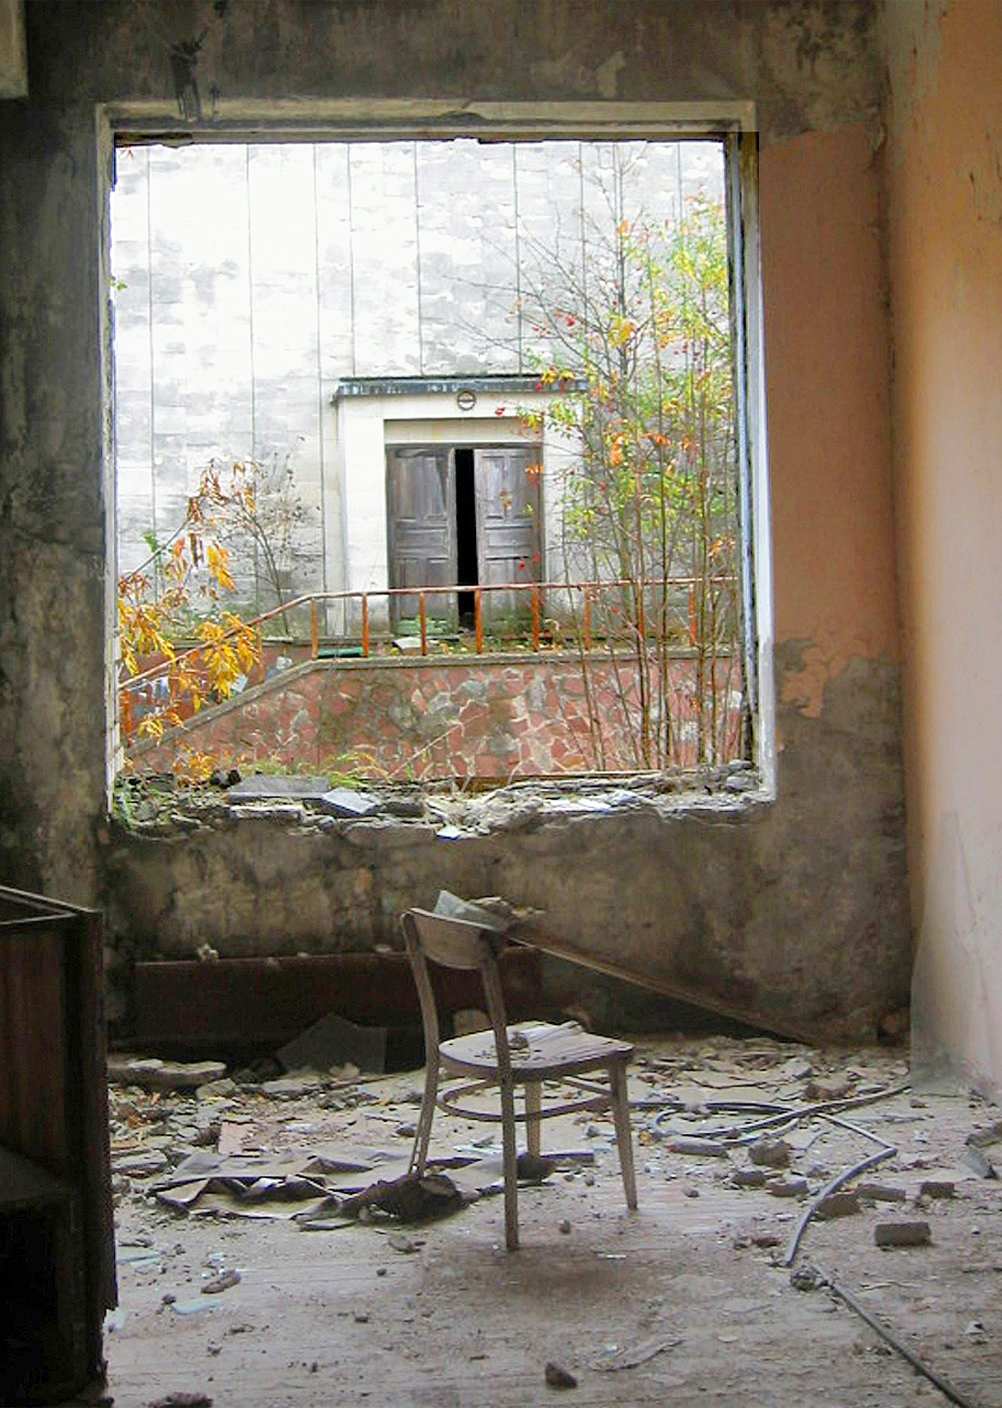 Chernobyl Pripyat Window & Chair